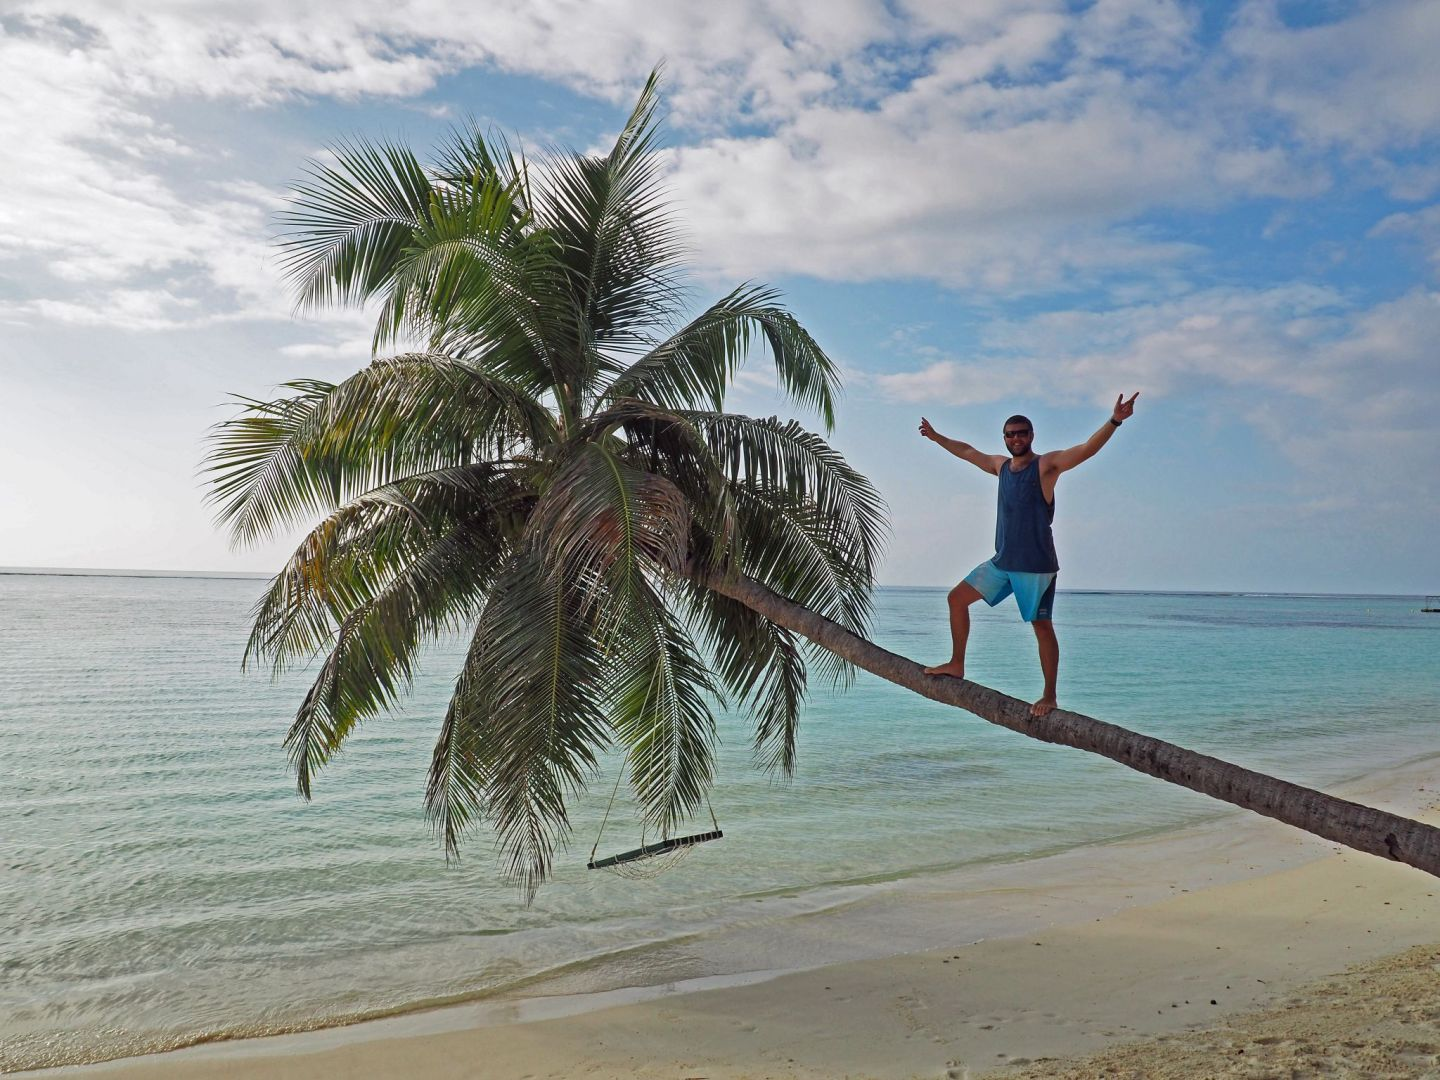 Dan on palm tree over water in Maldives